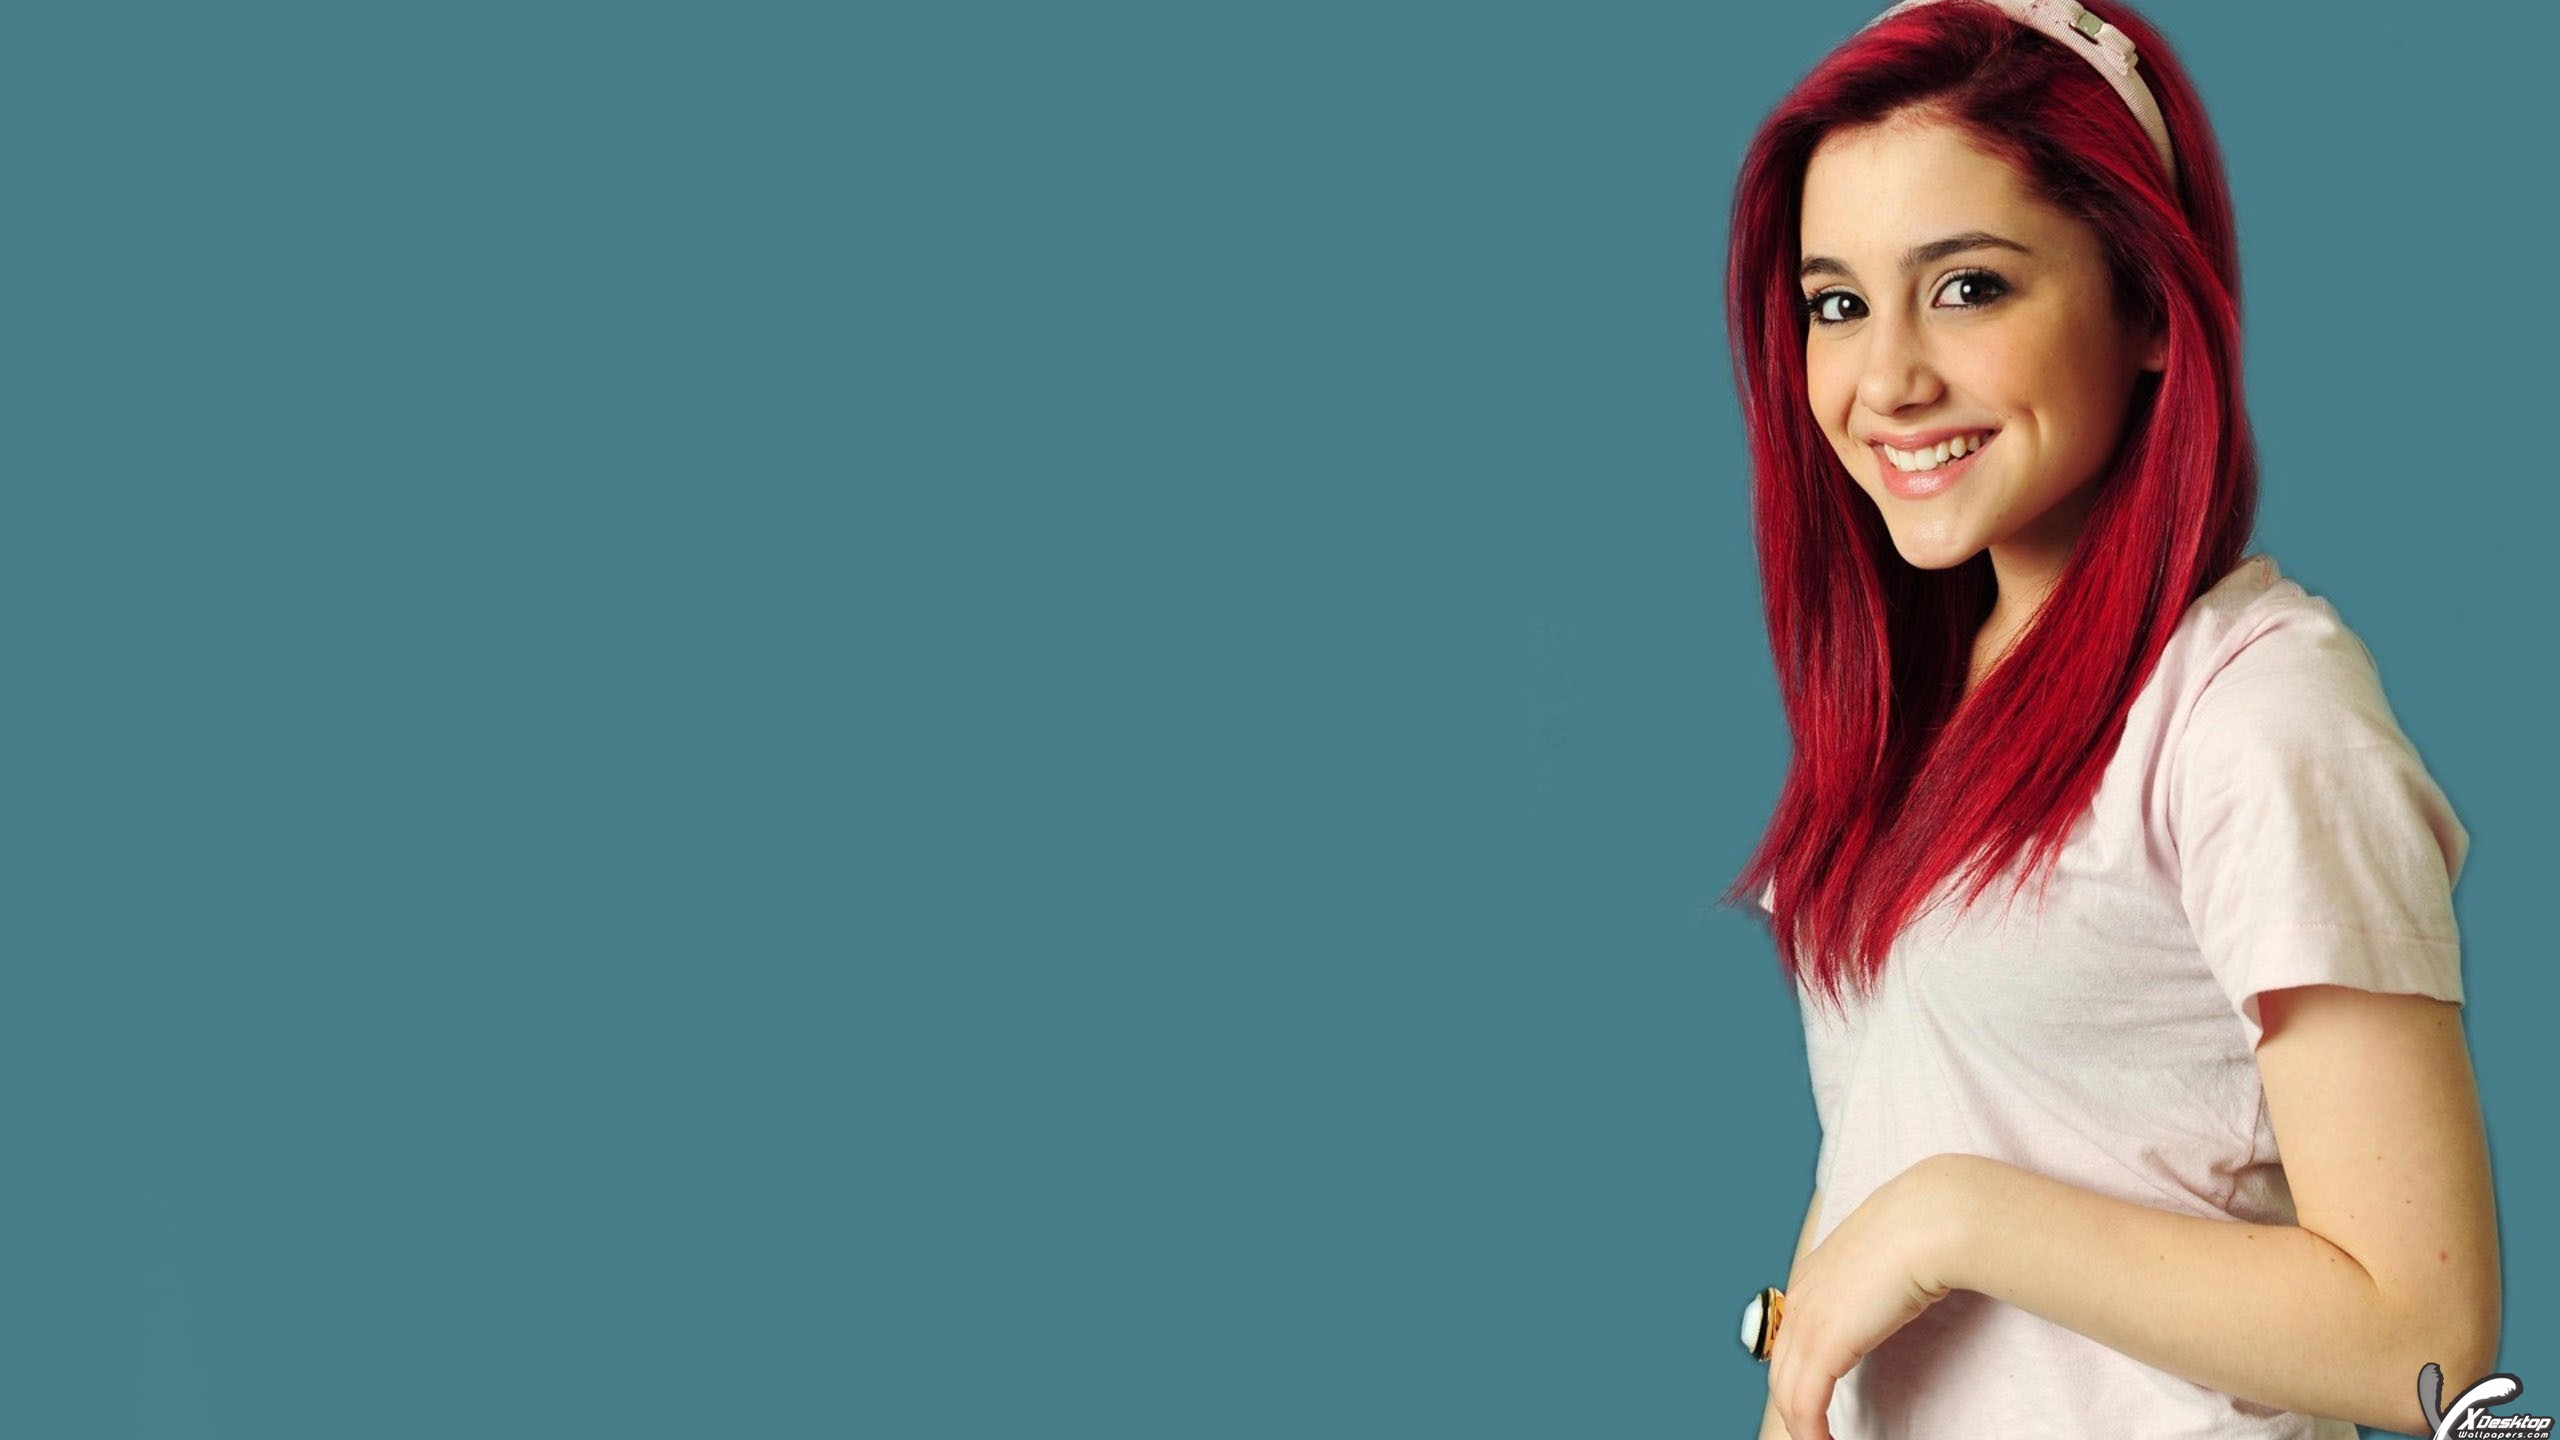 Ariana grande side pose wearing pink top wallpaper you are viewing wallpaper titled ariana grande voltagebd Image collections